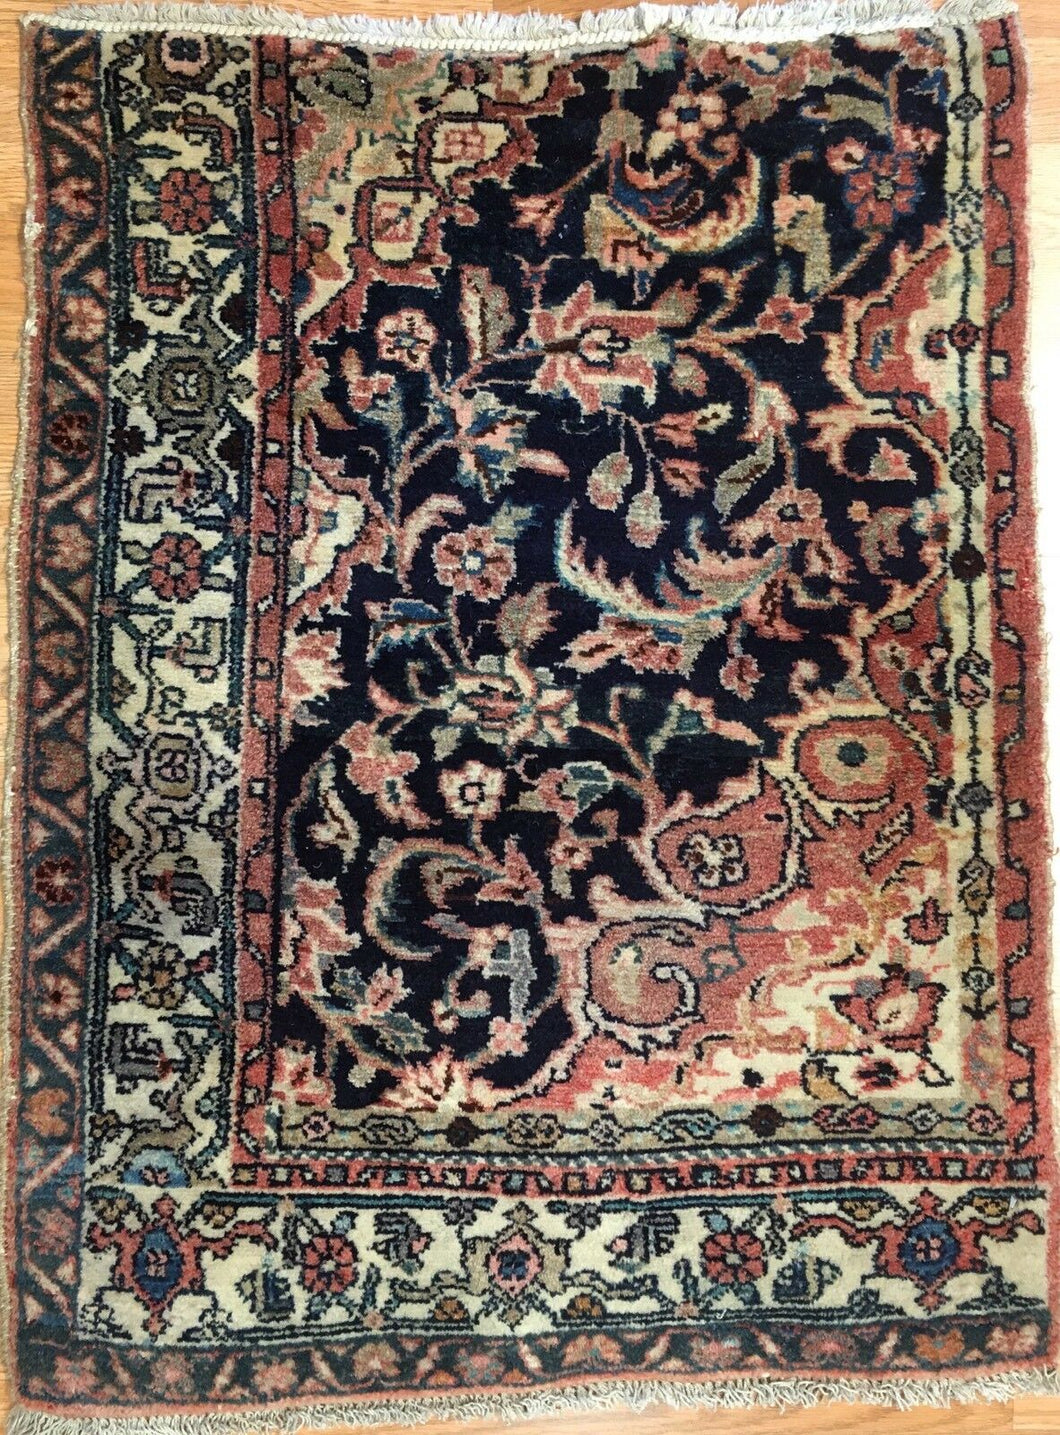 Whimsical Wagireh - 1910s Antique Kurdish Rug - Persian Koliaei Carpet - 2'2